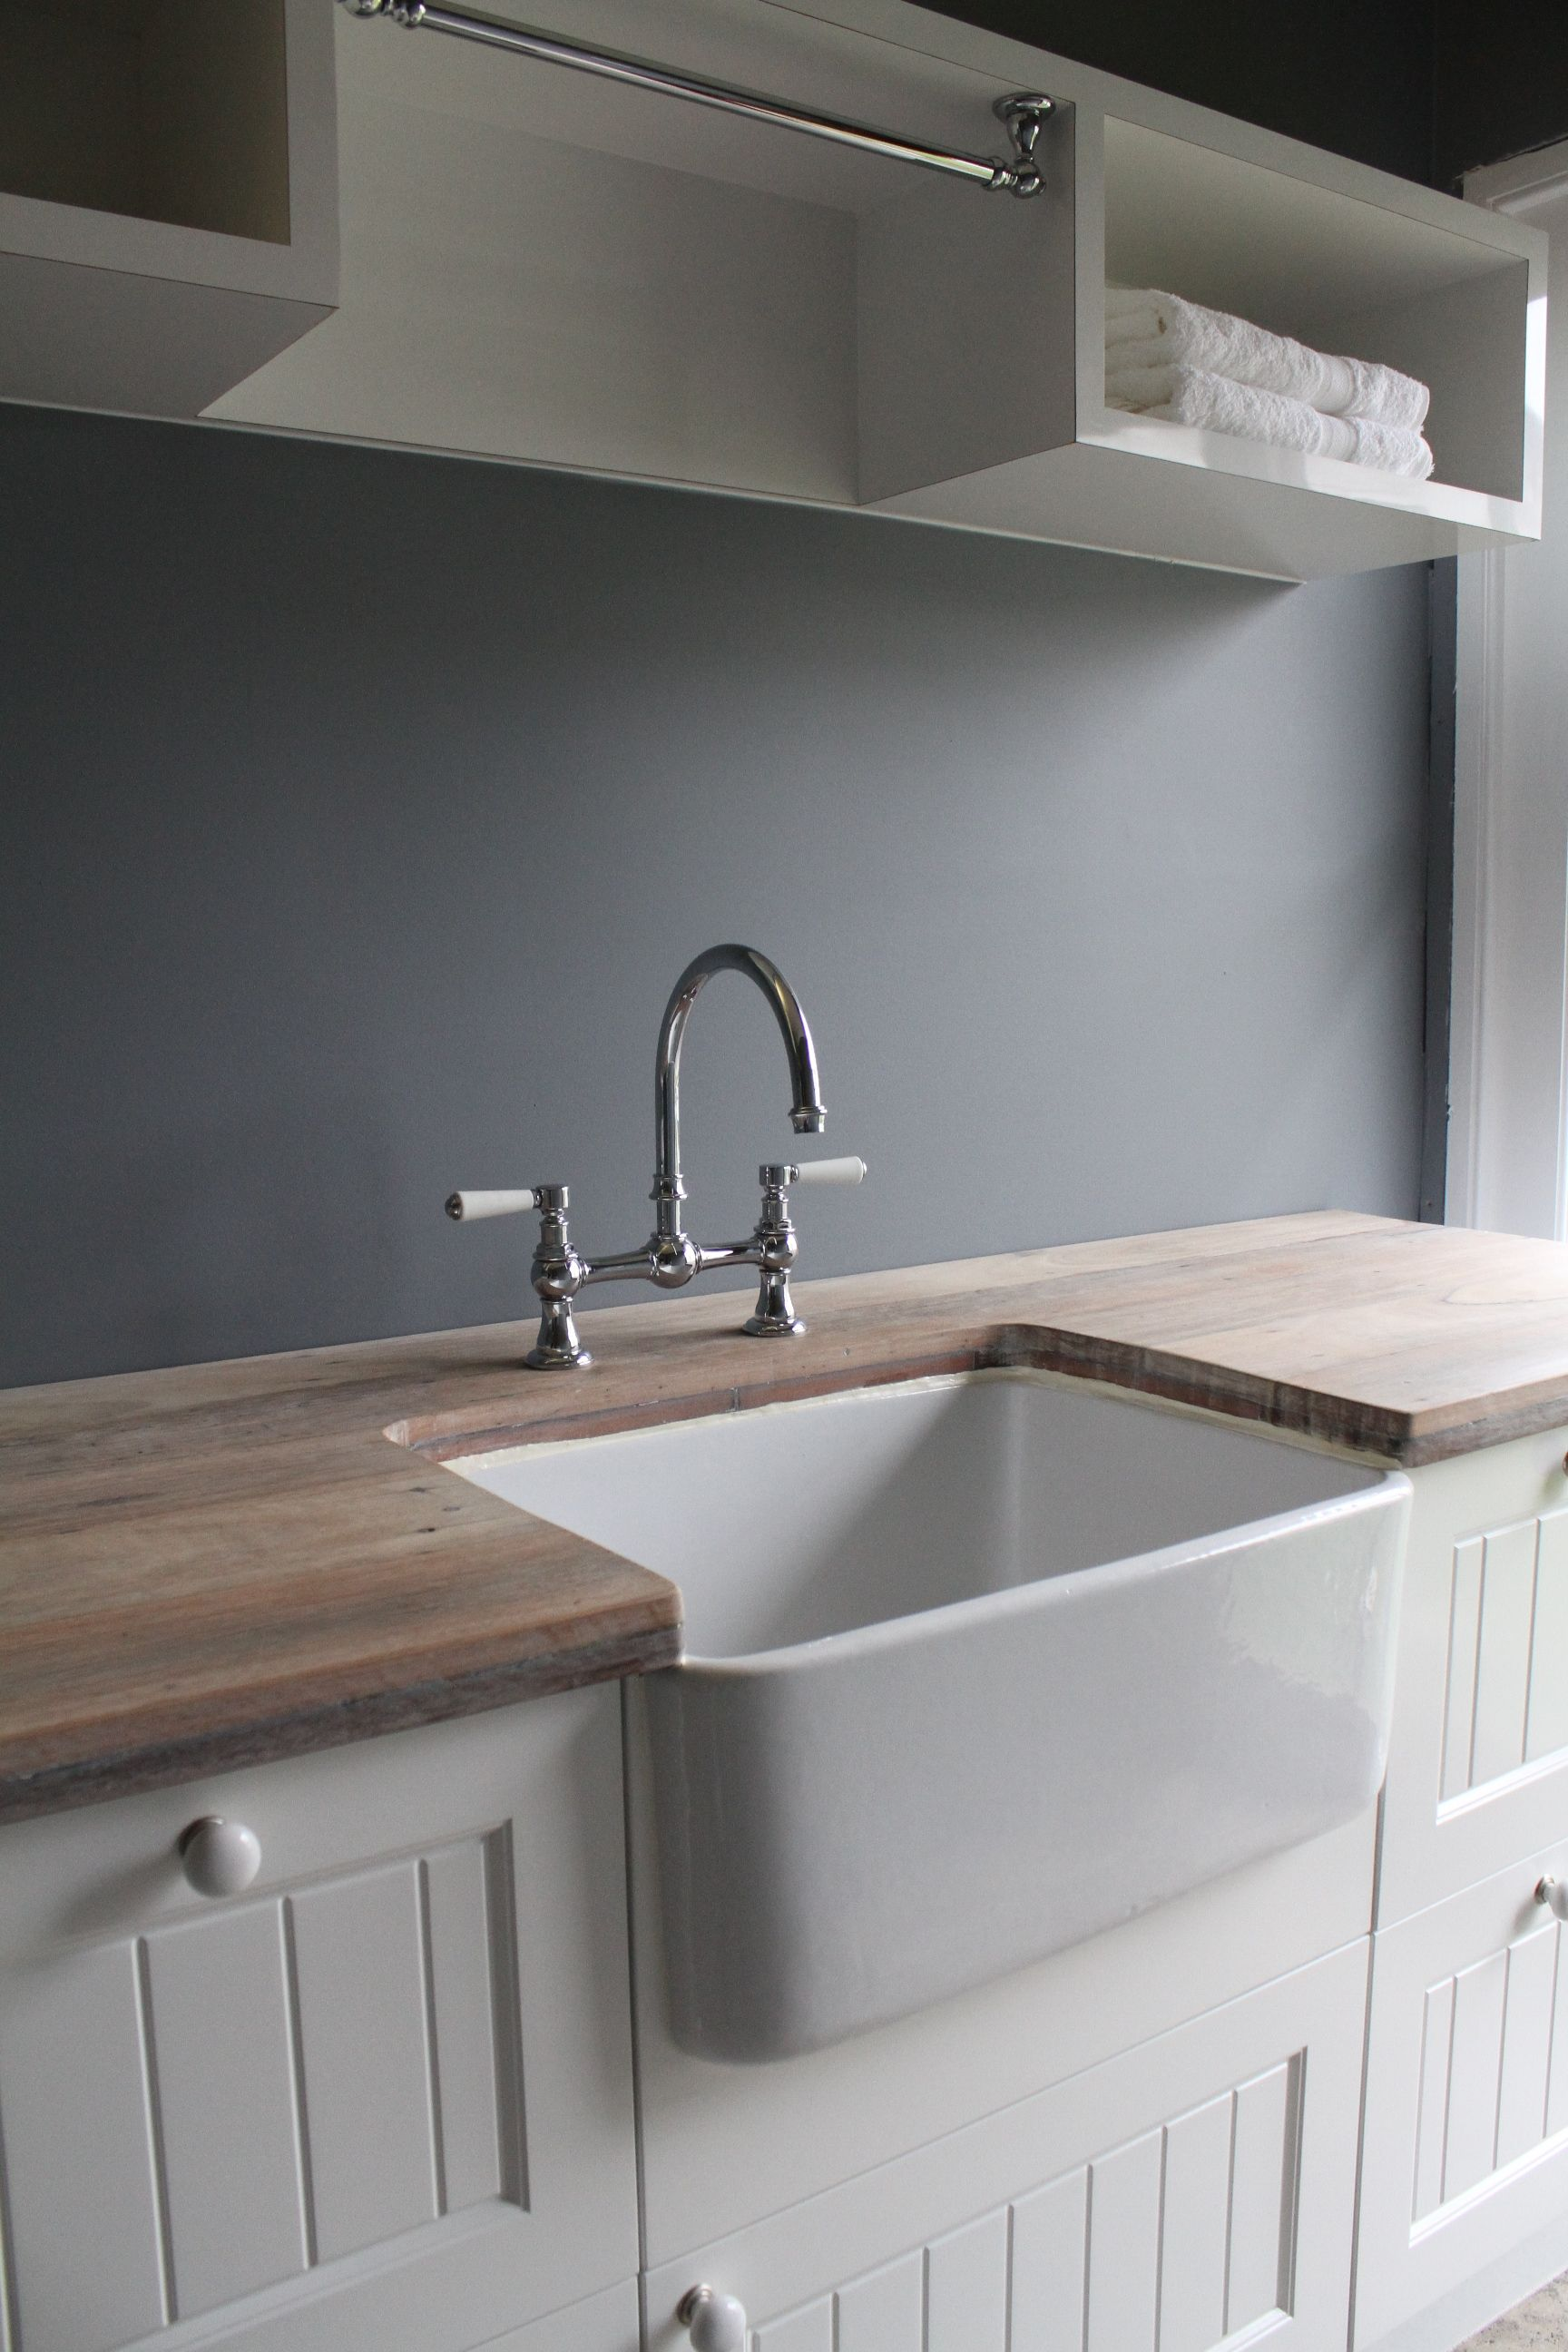 Butler laundry kitchen sink http www for Bathroom ideas belfast